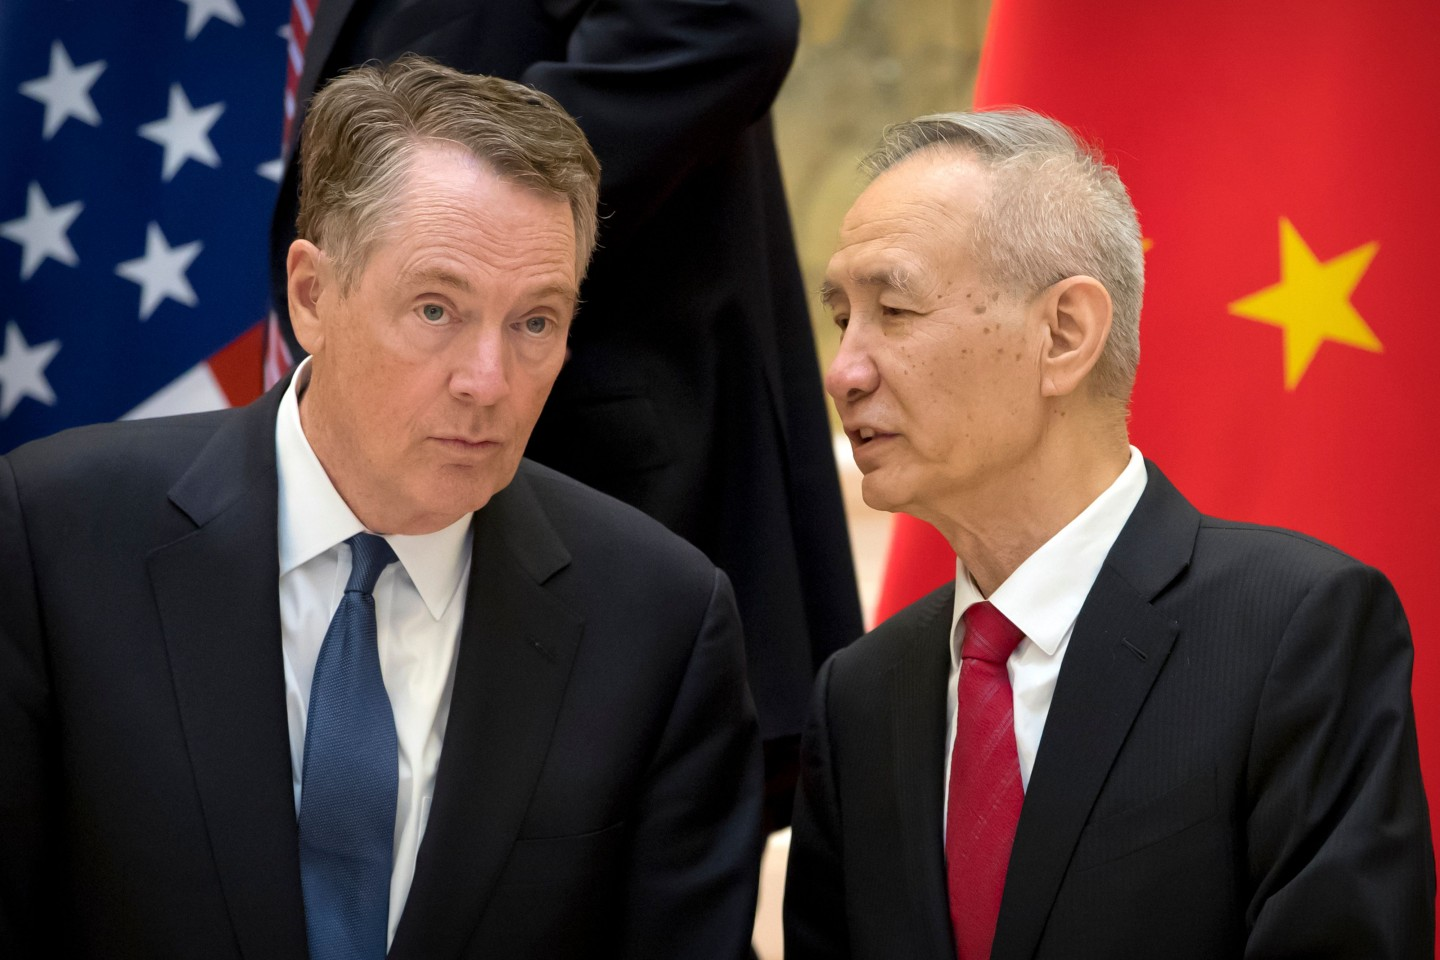 Pictured in this file photo taken on February 15, 2019, are US Trade Representative Robert Lighthizer (left) and Chinese Vice Premier Liu He. (Mark Schiefelbein/POOL/AFP)